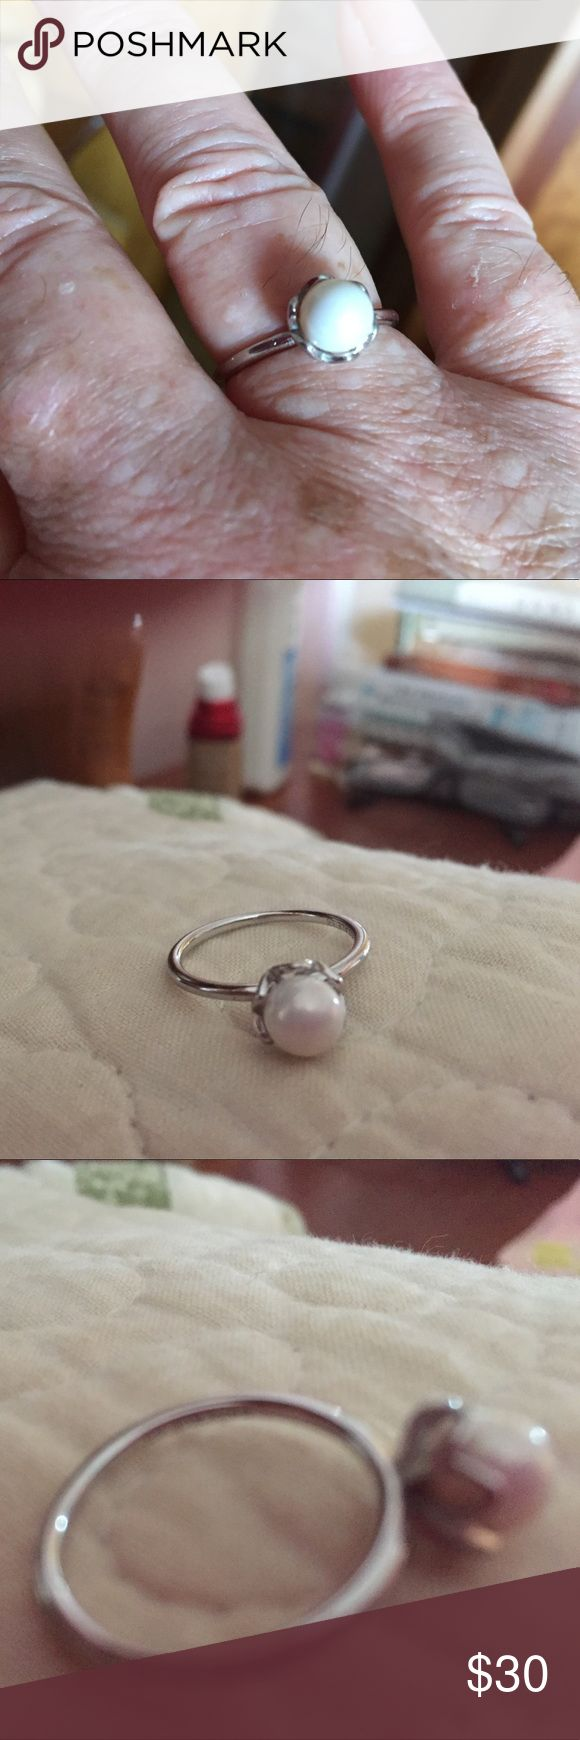 Pandora pearl ring size 58 Authentic Pandora pearl ring Pandora Other